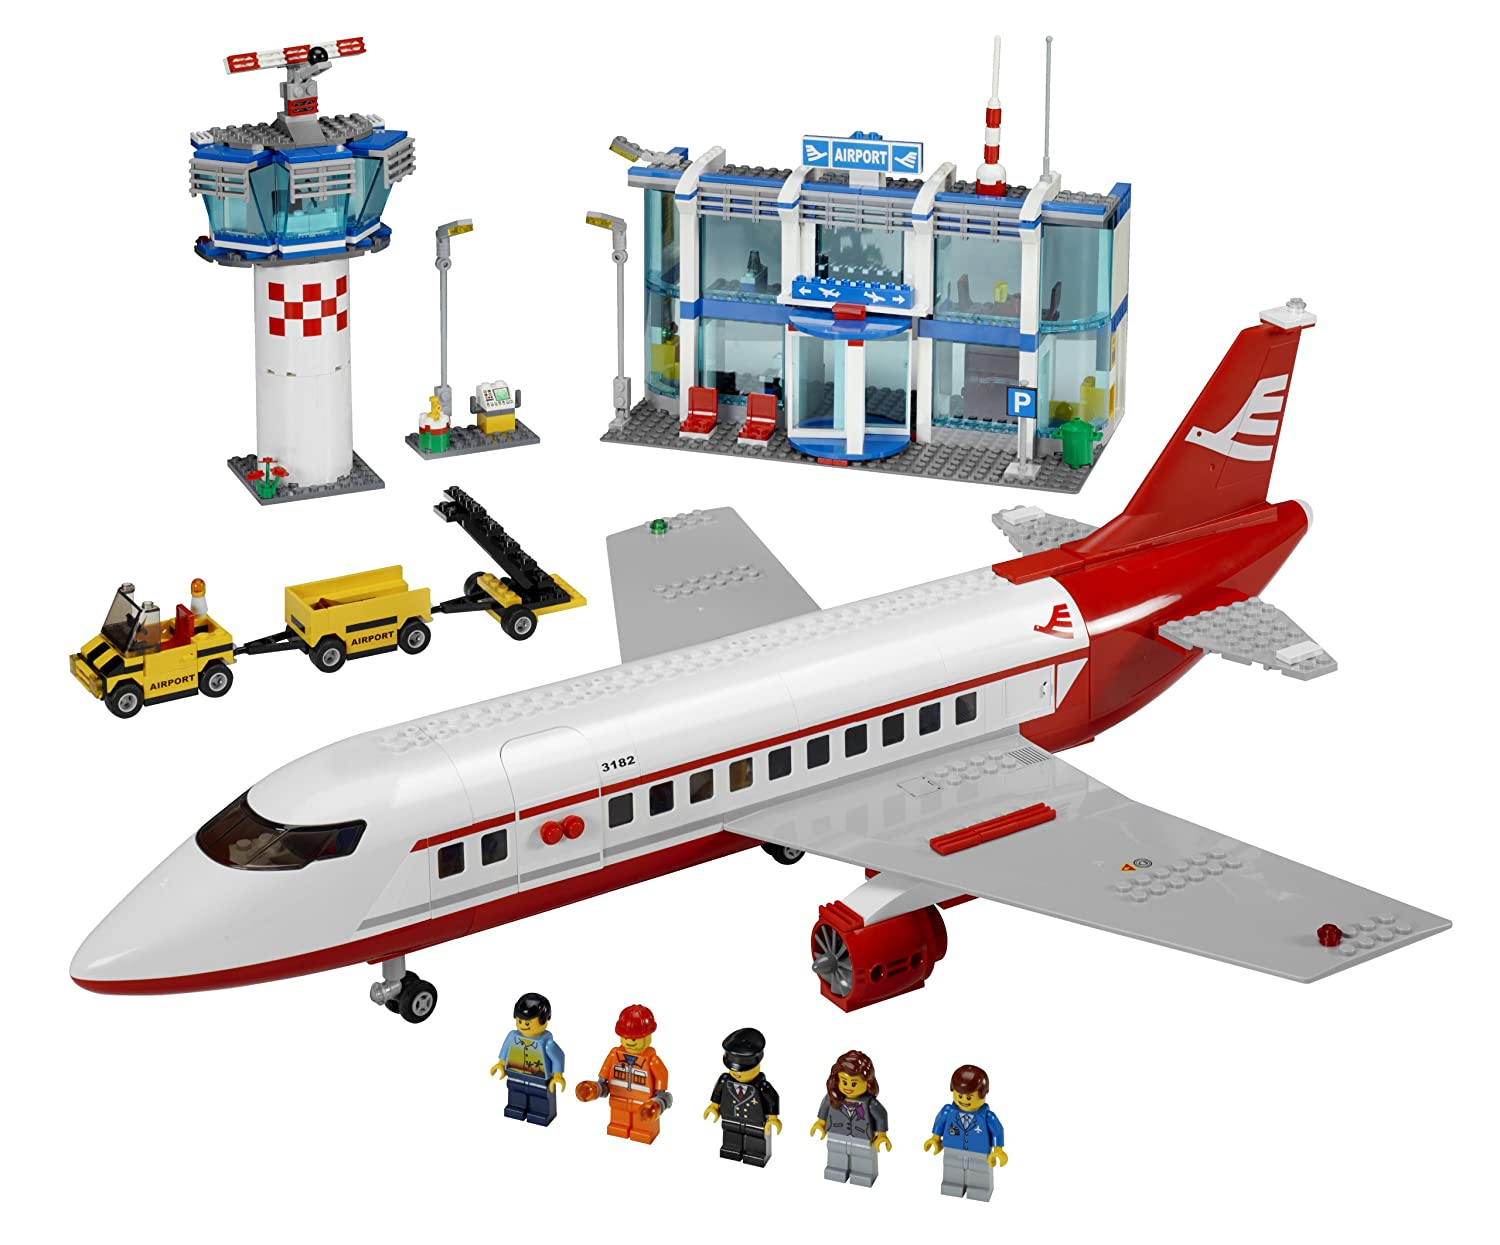 Aeroporto Lego : Amazon lego city airport discontinued by manufacturer